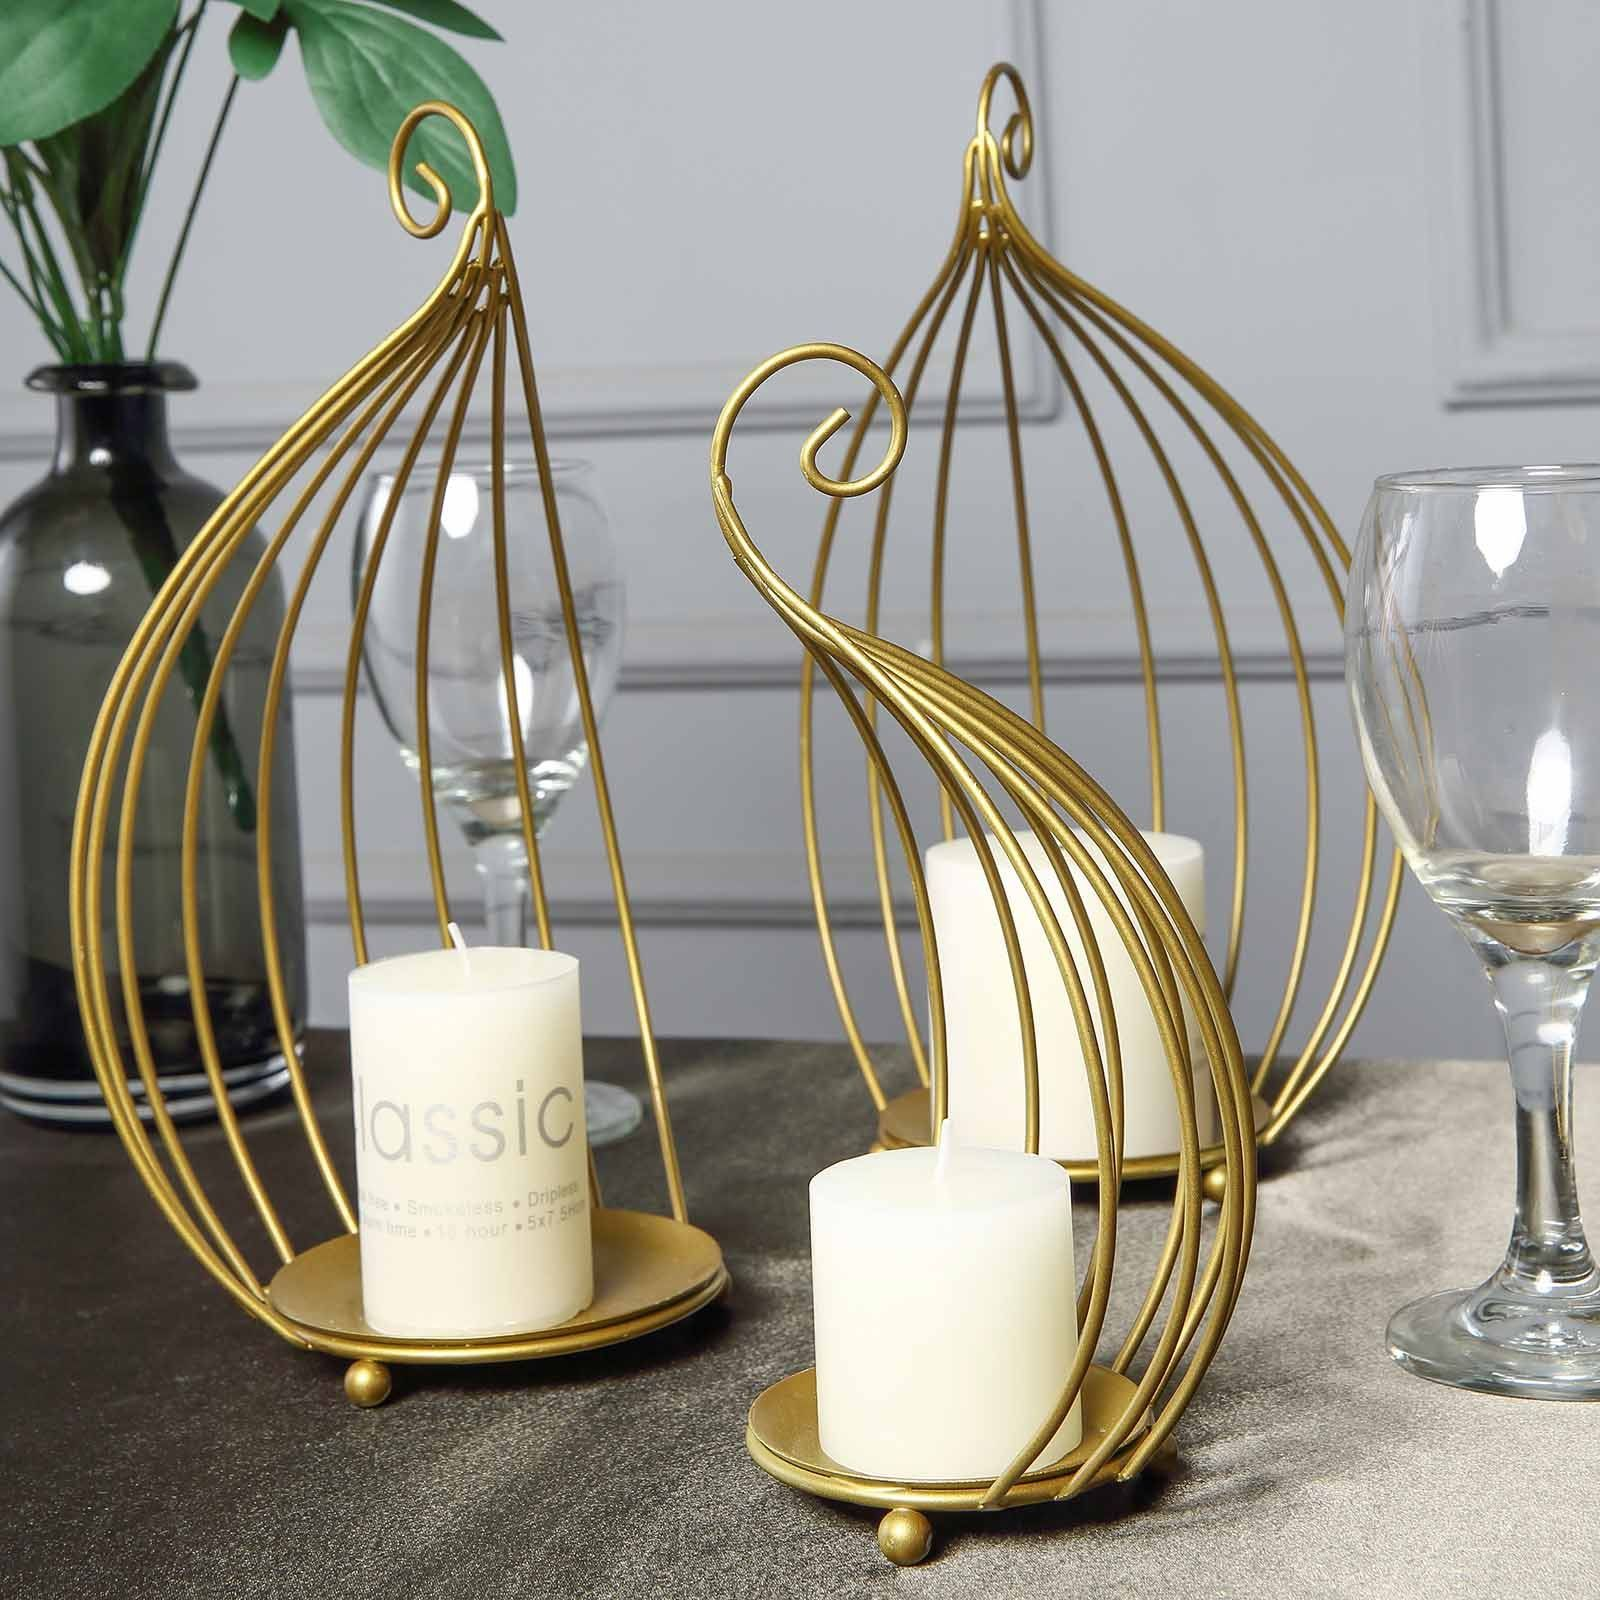 Hanging Wrought Iron Candle Holder Set For Centerpieces Set Of 3 Metallic Gold Bird Cage Candle Holder Set In 2020 Wrought Iron Candle Holders Iron Candle Holders Wrought Iron Candle